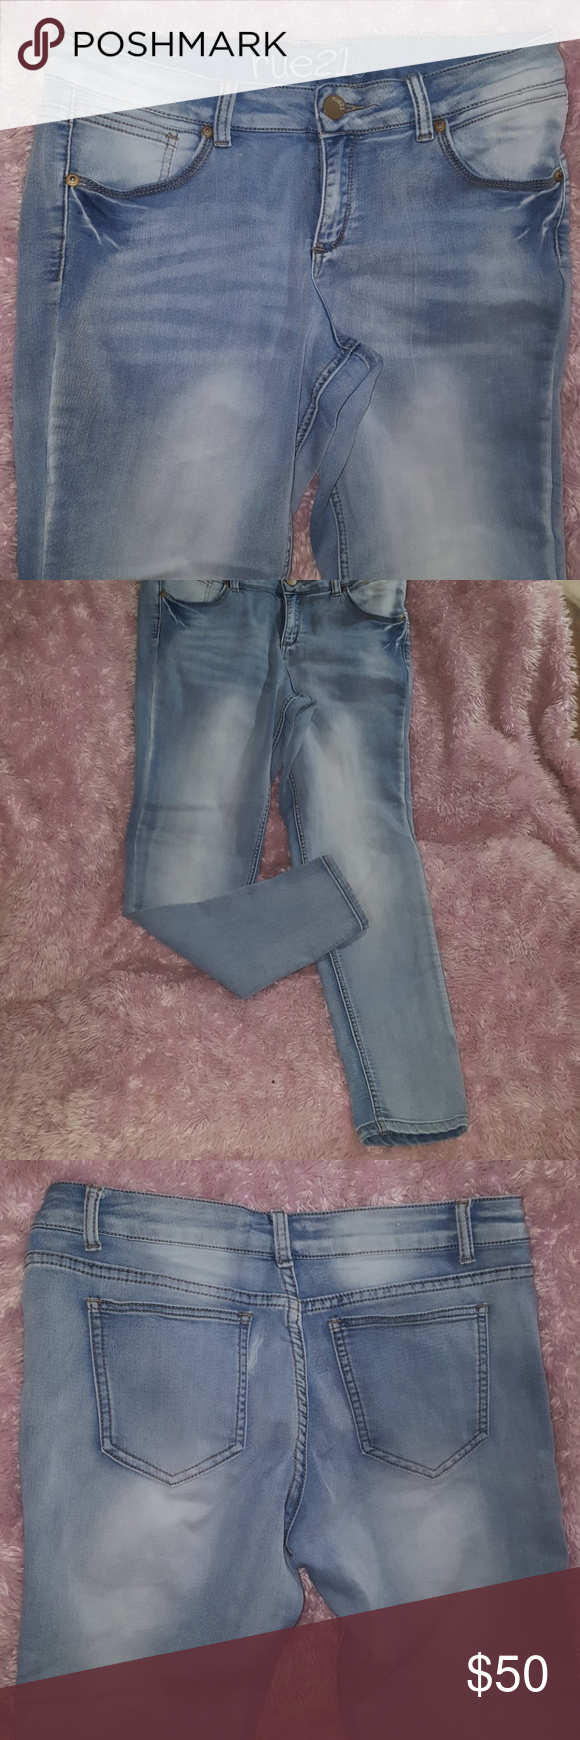 Rue21 Rue 21 Freedom Flex Light Wash Jegging New Jeggings Womens Jeans Skinny Clothes Design